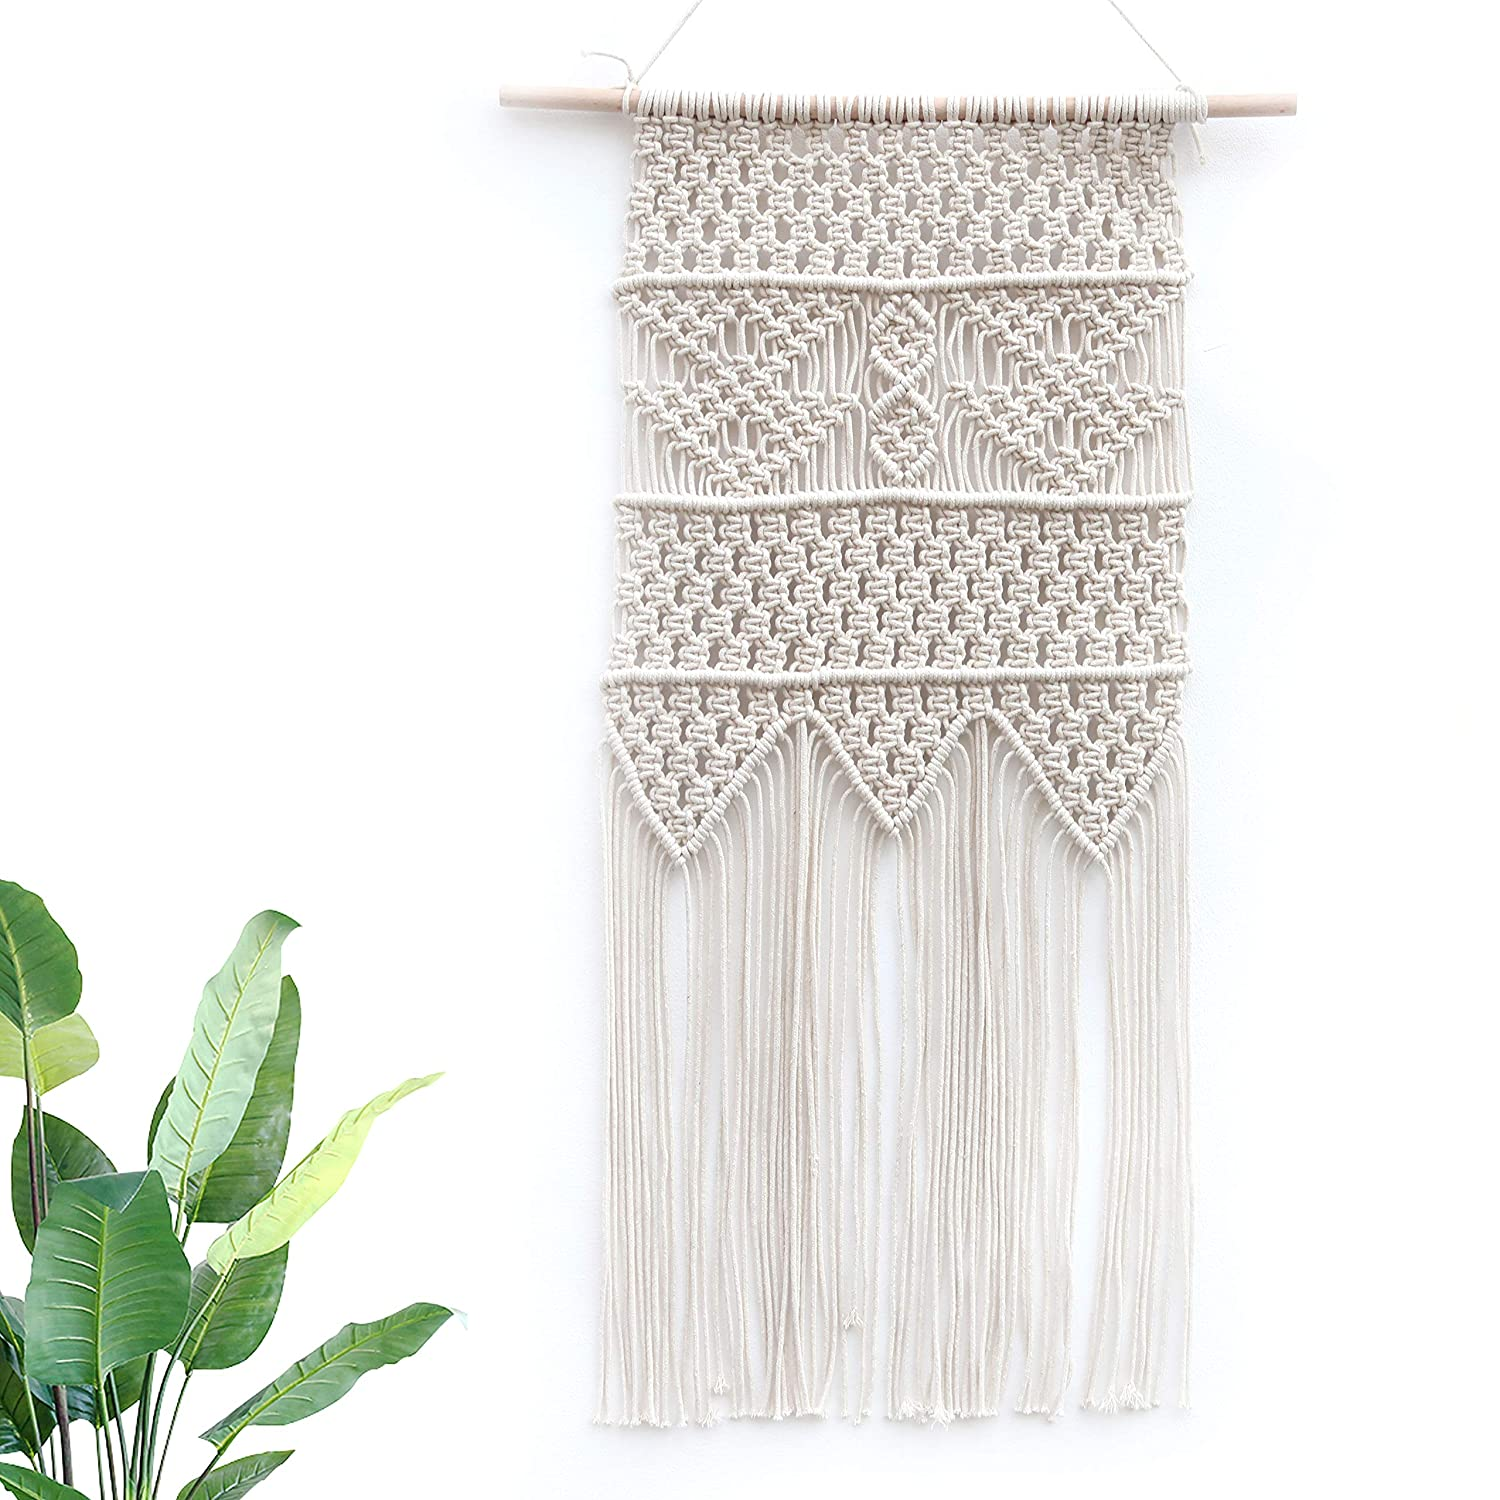 BlueMake Macrame Wall Hanging Tapestry-Home Decorative Interior Wall Decor (16.0